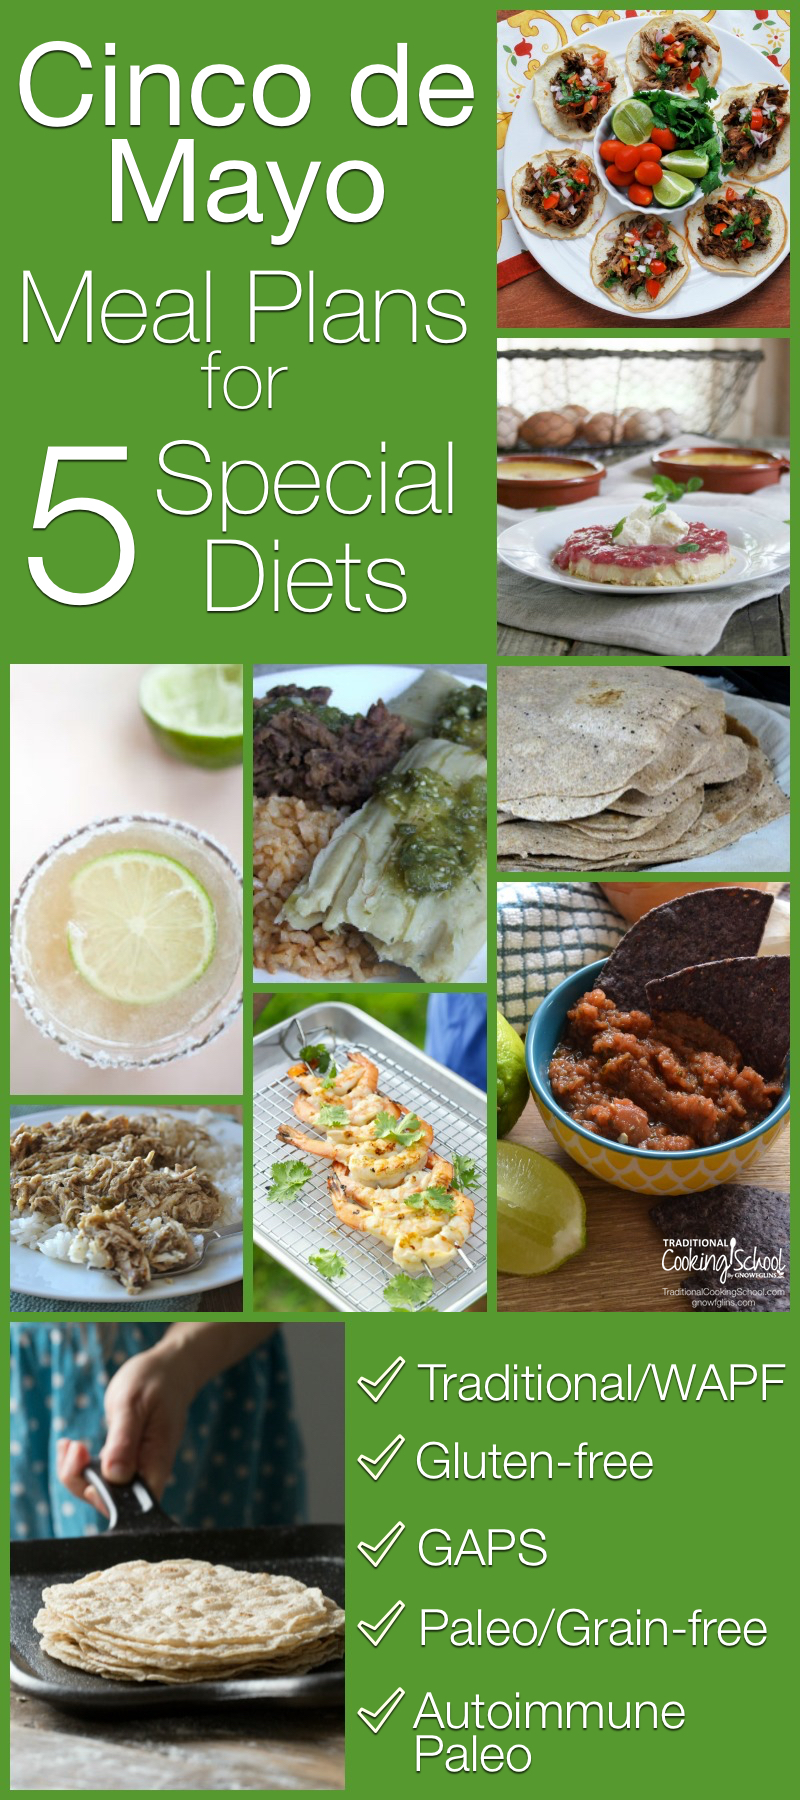 Cinco de Mayo Meal Plans for 5 Special Diets | In these Cinco de Mayo meal plans for five special diets (traditional, gluten-free, GAPS, Paleo, and Autoimmune Paleo), we've provided you with a good mix of both American and Pueblo cuisine. From appetizer all the way to dessert! | TraditionalCookingSchool.com